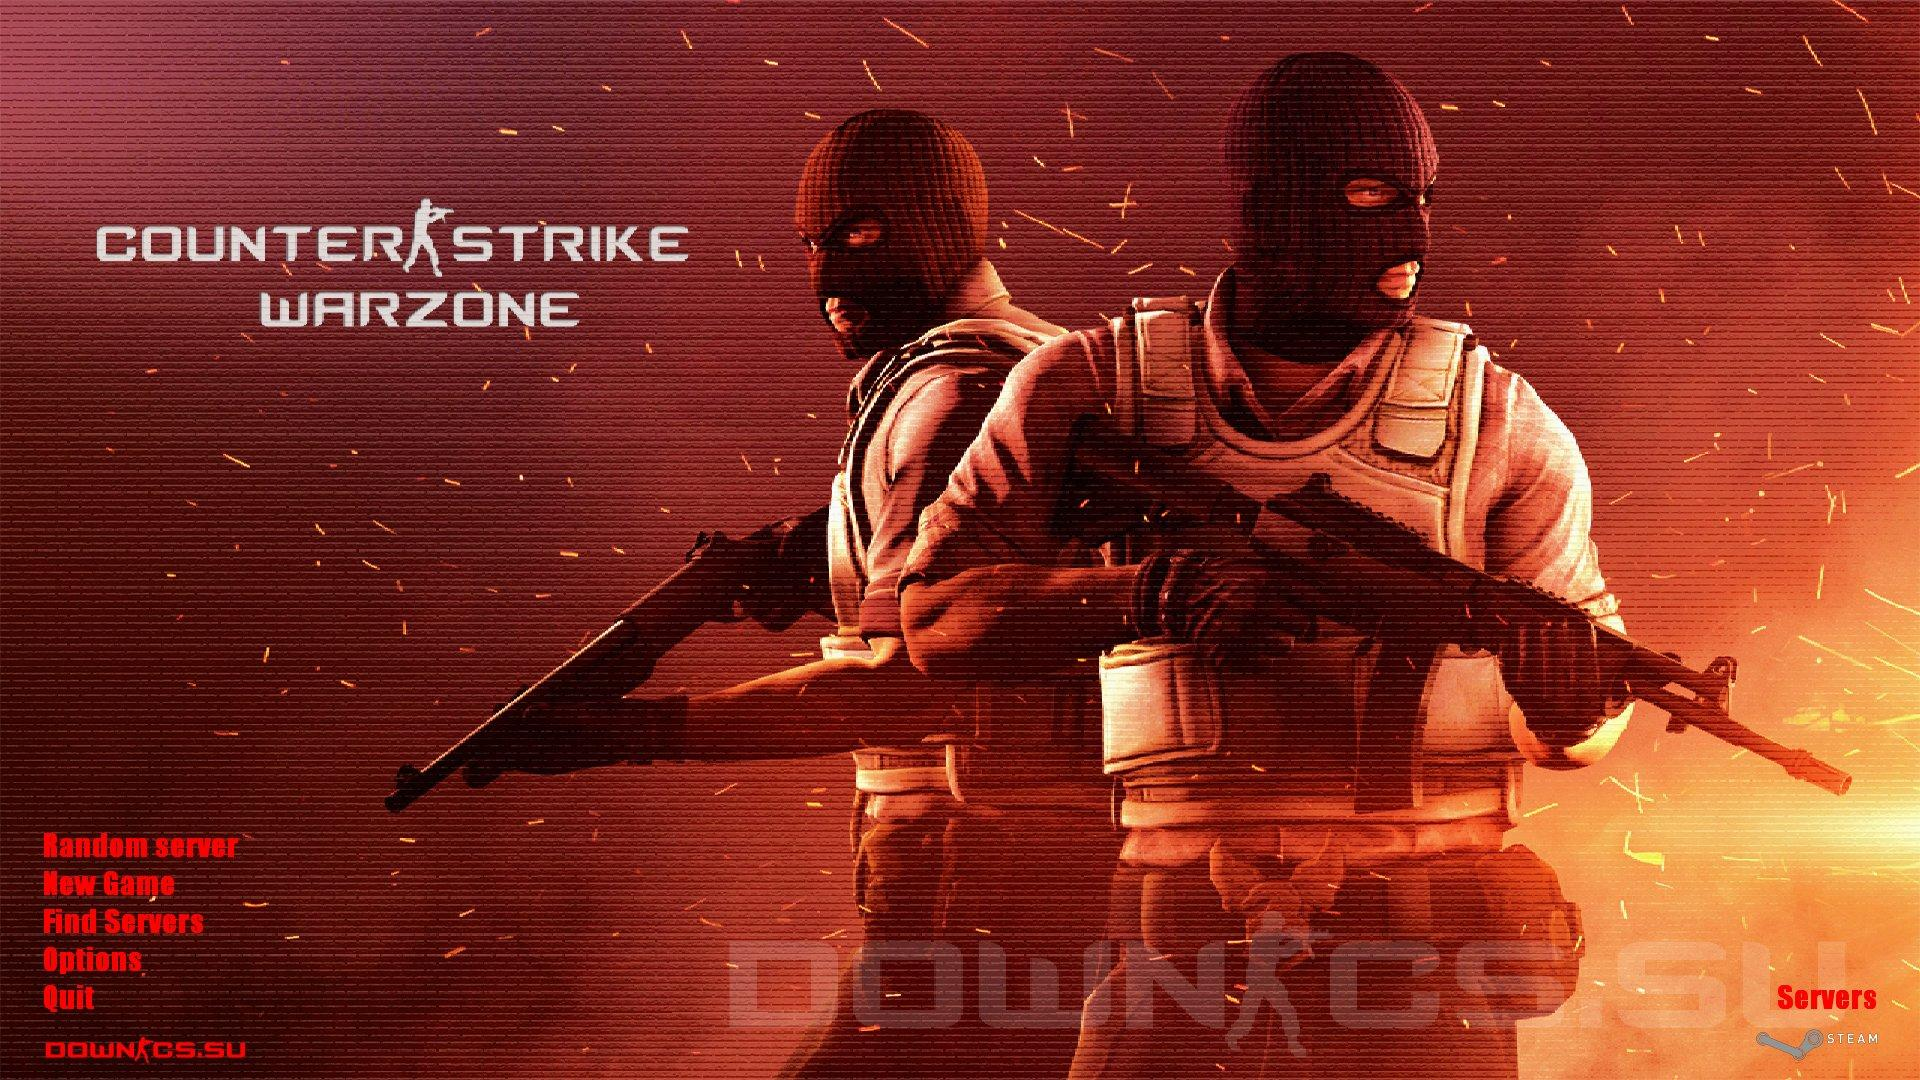 Counter Strike 1.6 Extreme Warzone Edition free full pc game for download